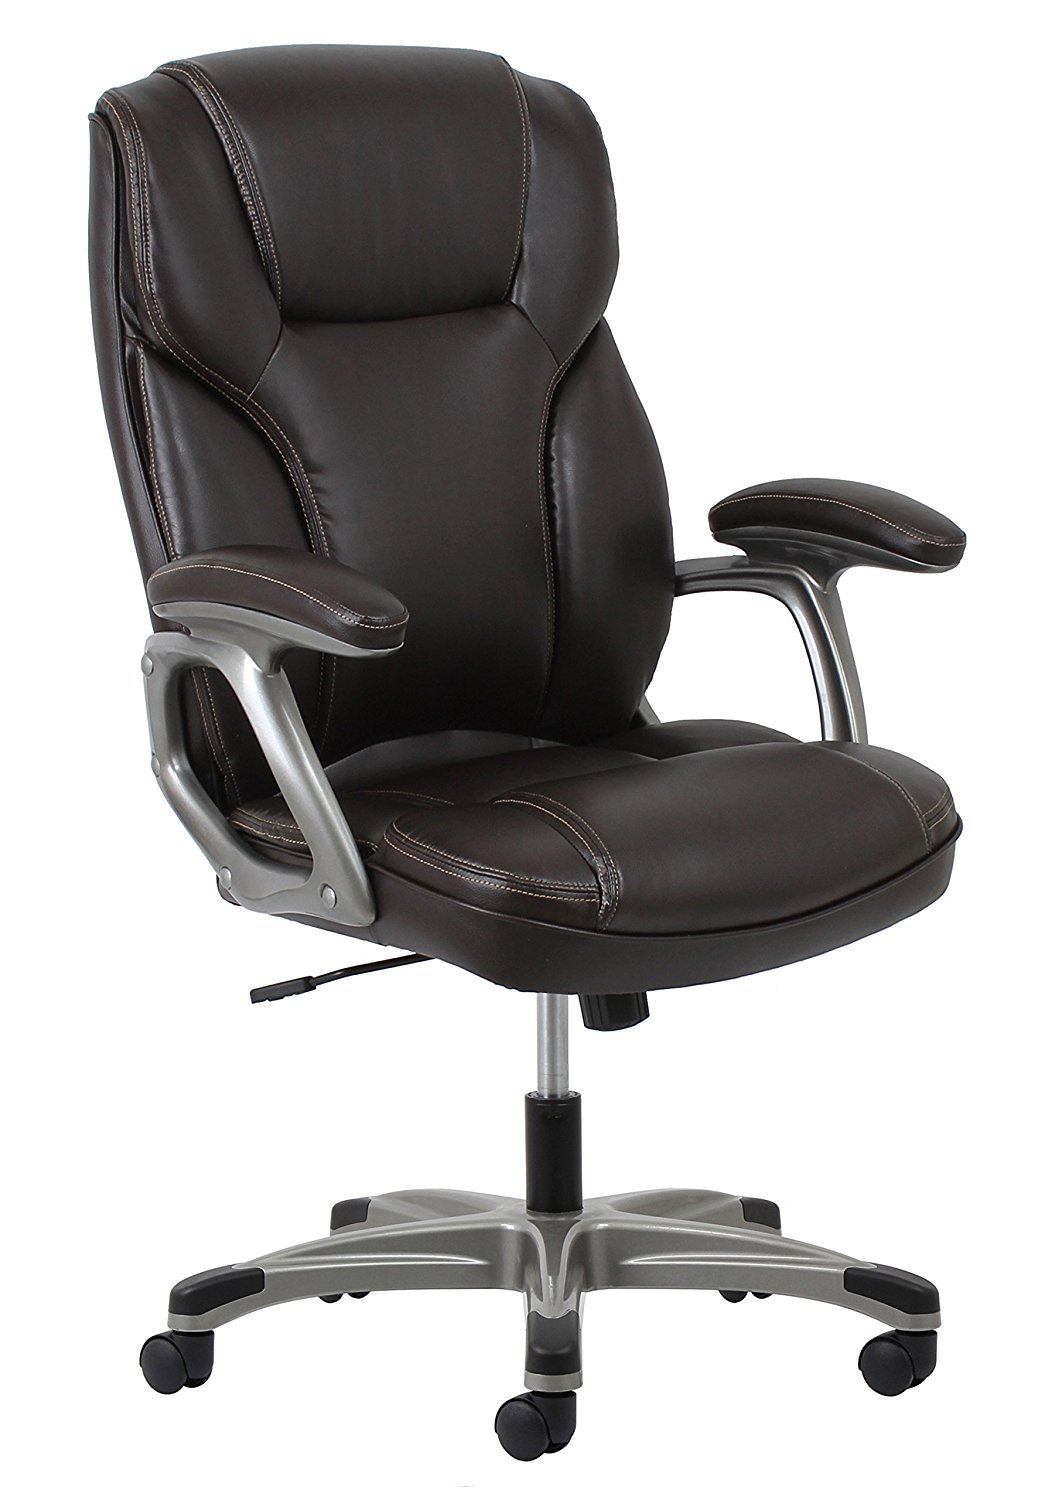 High Back Office Chairs High Back Executive Office Chair Home Furniture Design